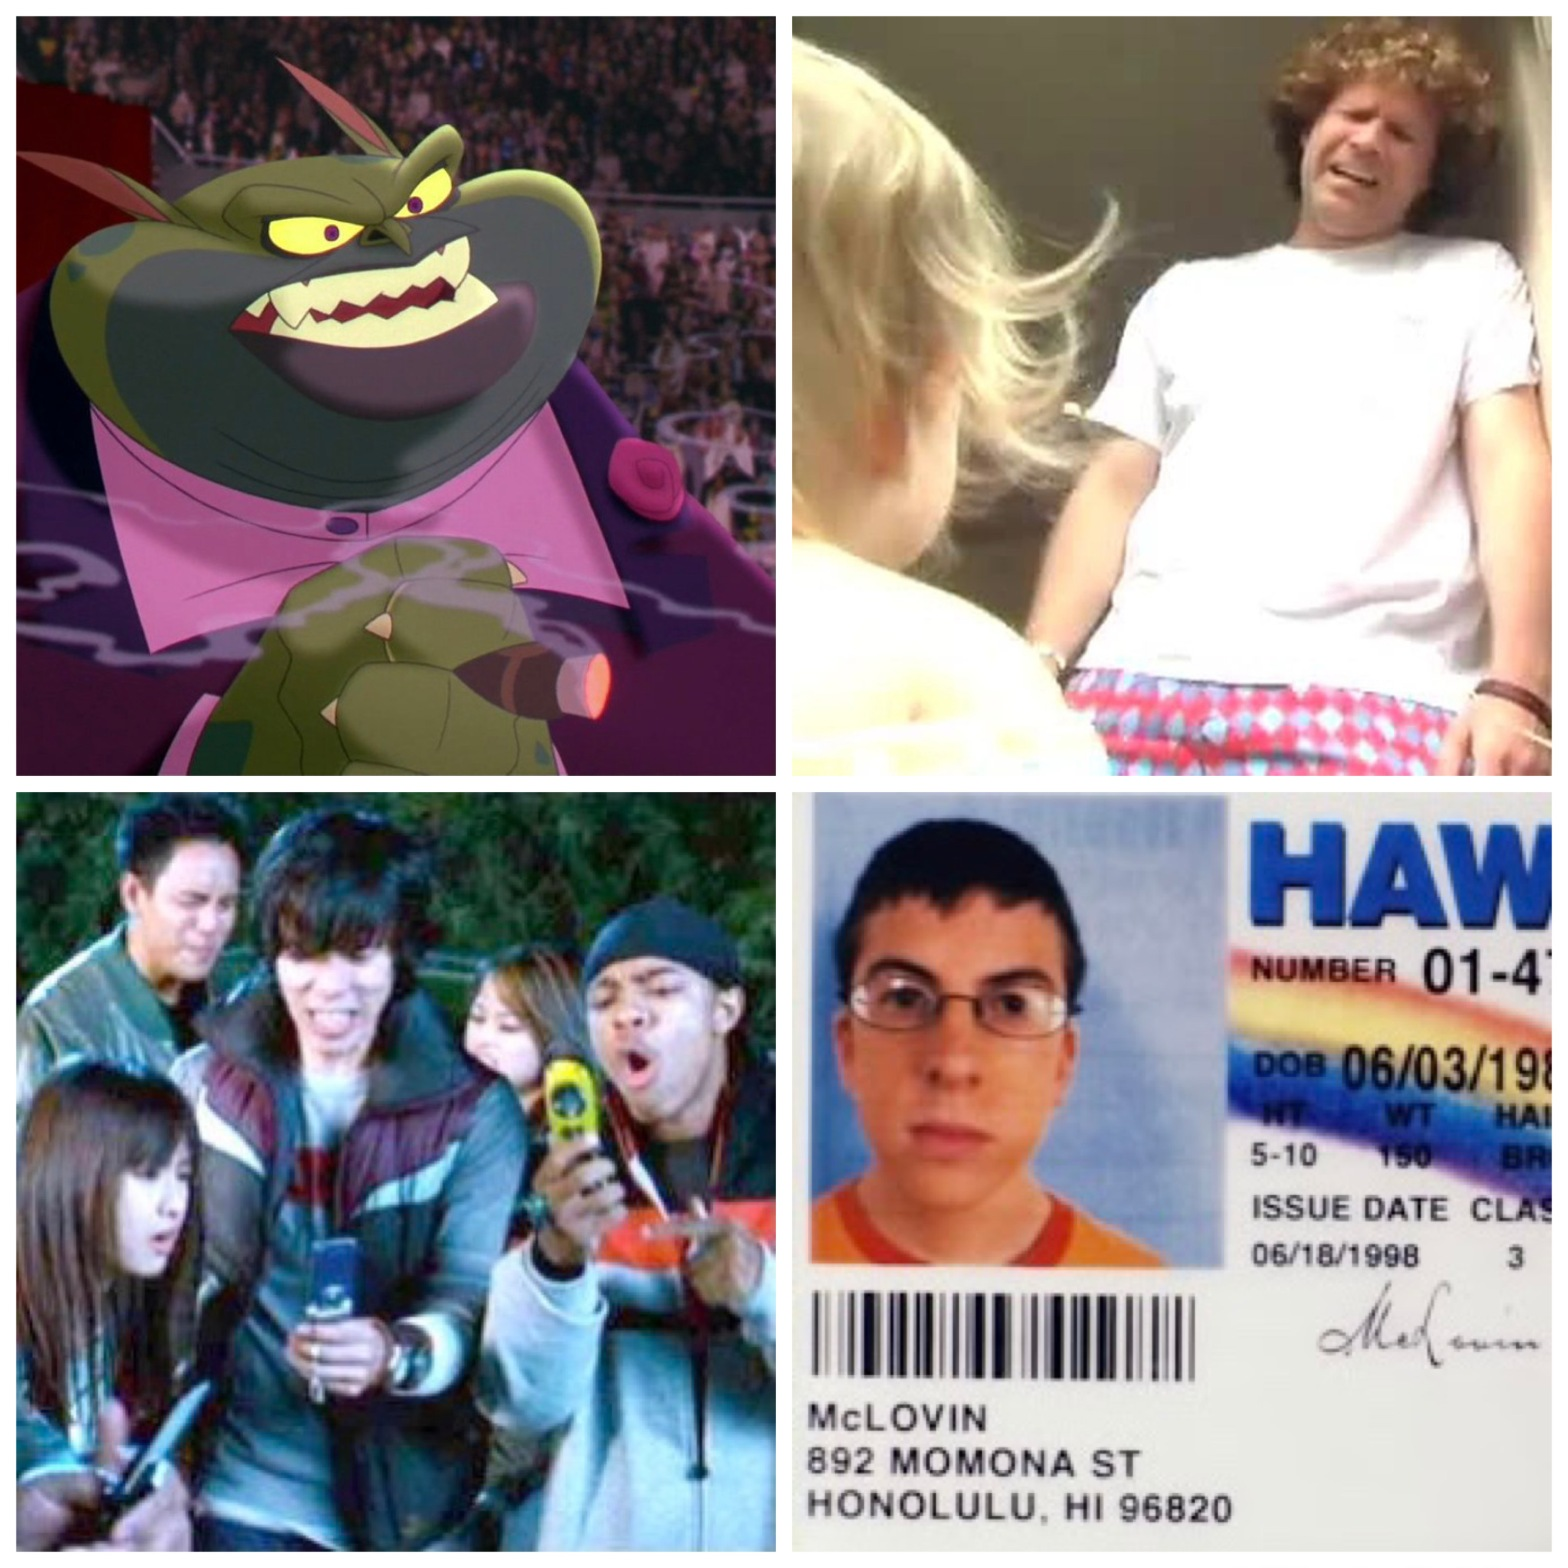 Danny DeVito's character from Space Jam, Will Ferrell in The Landlord, flip phones in The Fast and the Furious: Tokyo Drift, and McLovin's drivers license in Superbad.